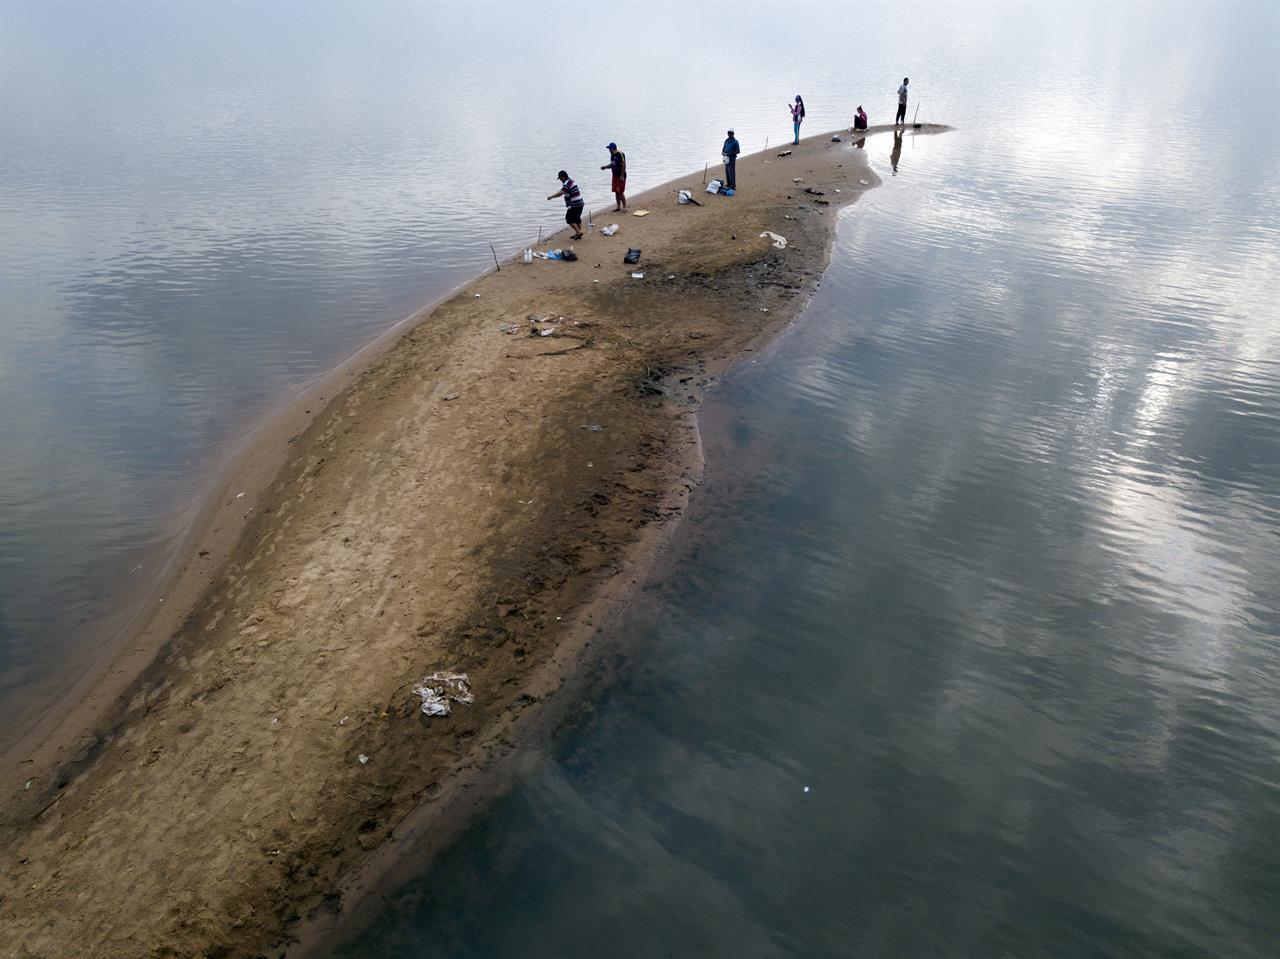 Men fish from a sand bank on the Paraguay River, taking advantage of the historical drop of water levels in San Antonio, Paraguay, on the outskirts of Asuncion, on Thursday, Oct. 15, 2020. (Ap Photo/Jorge Saenz)